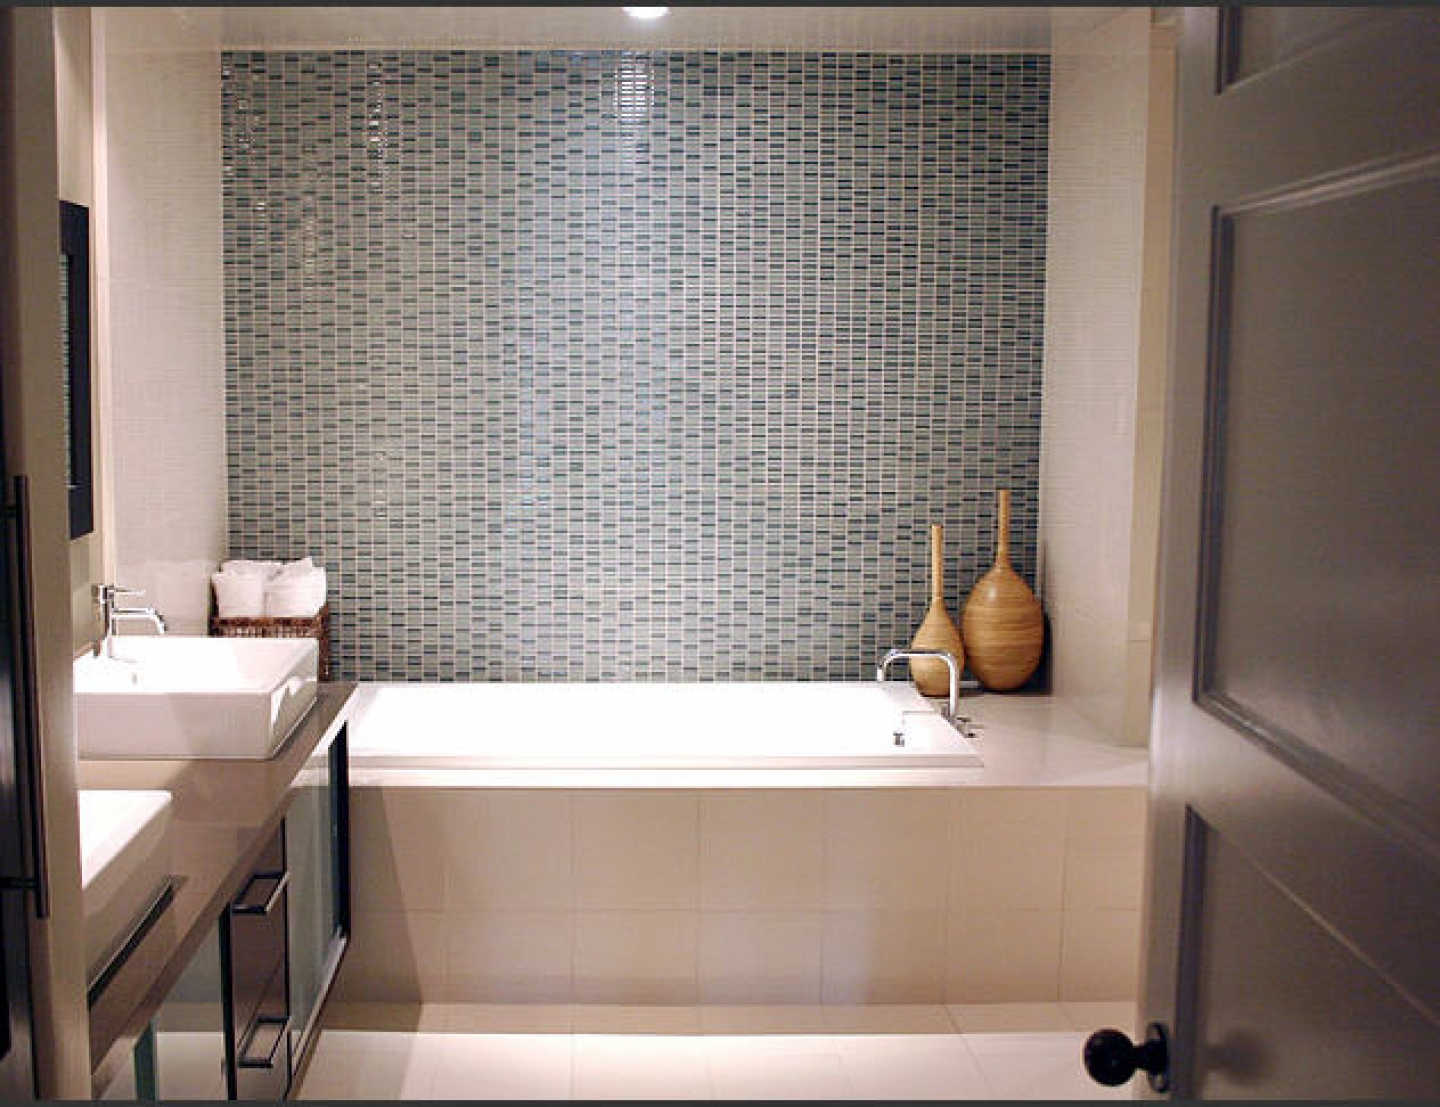 design-ideas-small-space-modern-bathroom-tile-design-ideas-tile-design-1440x1107